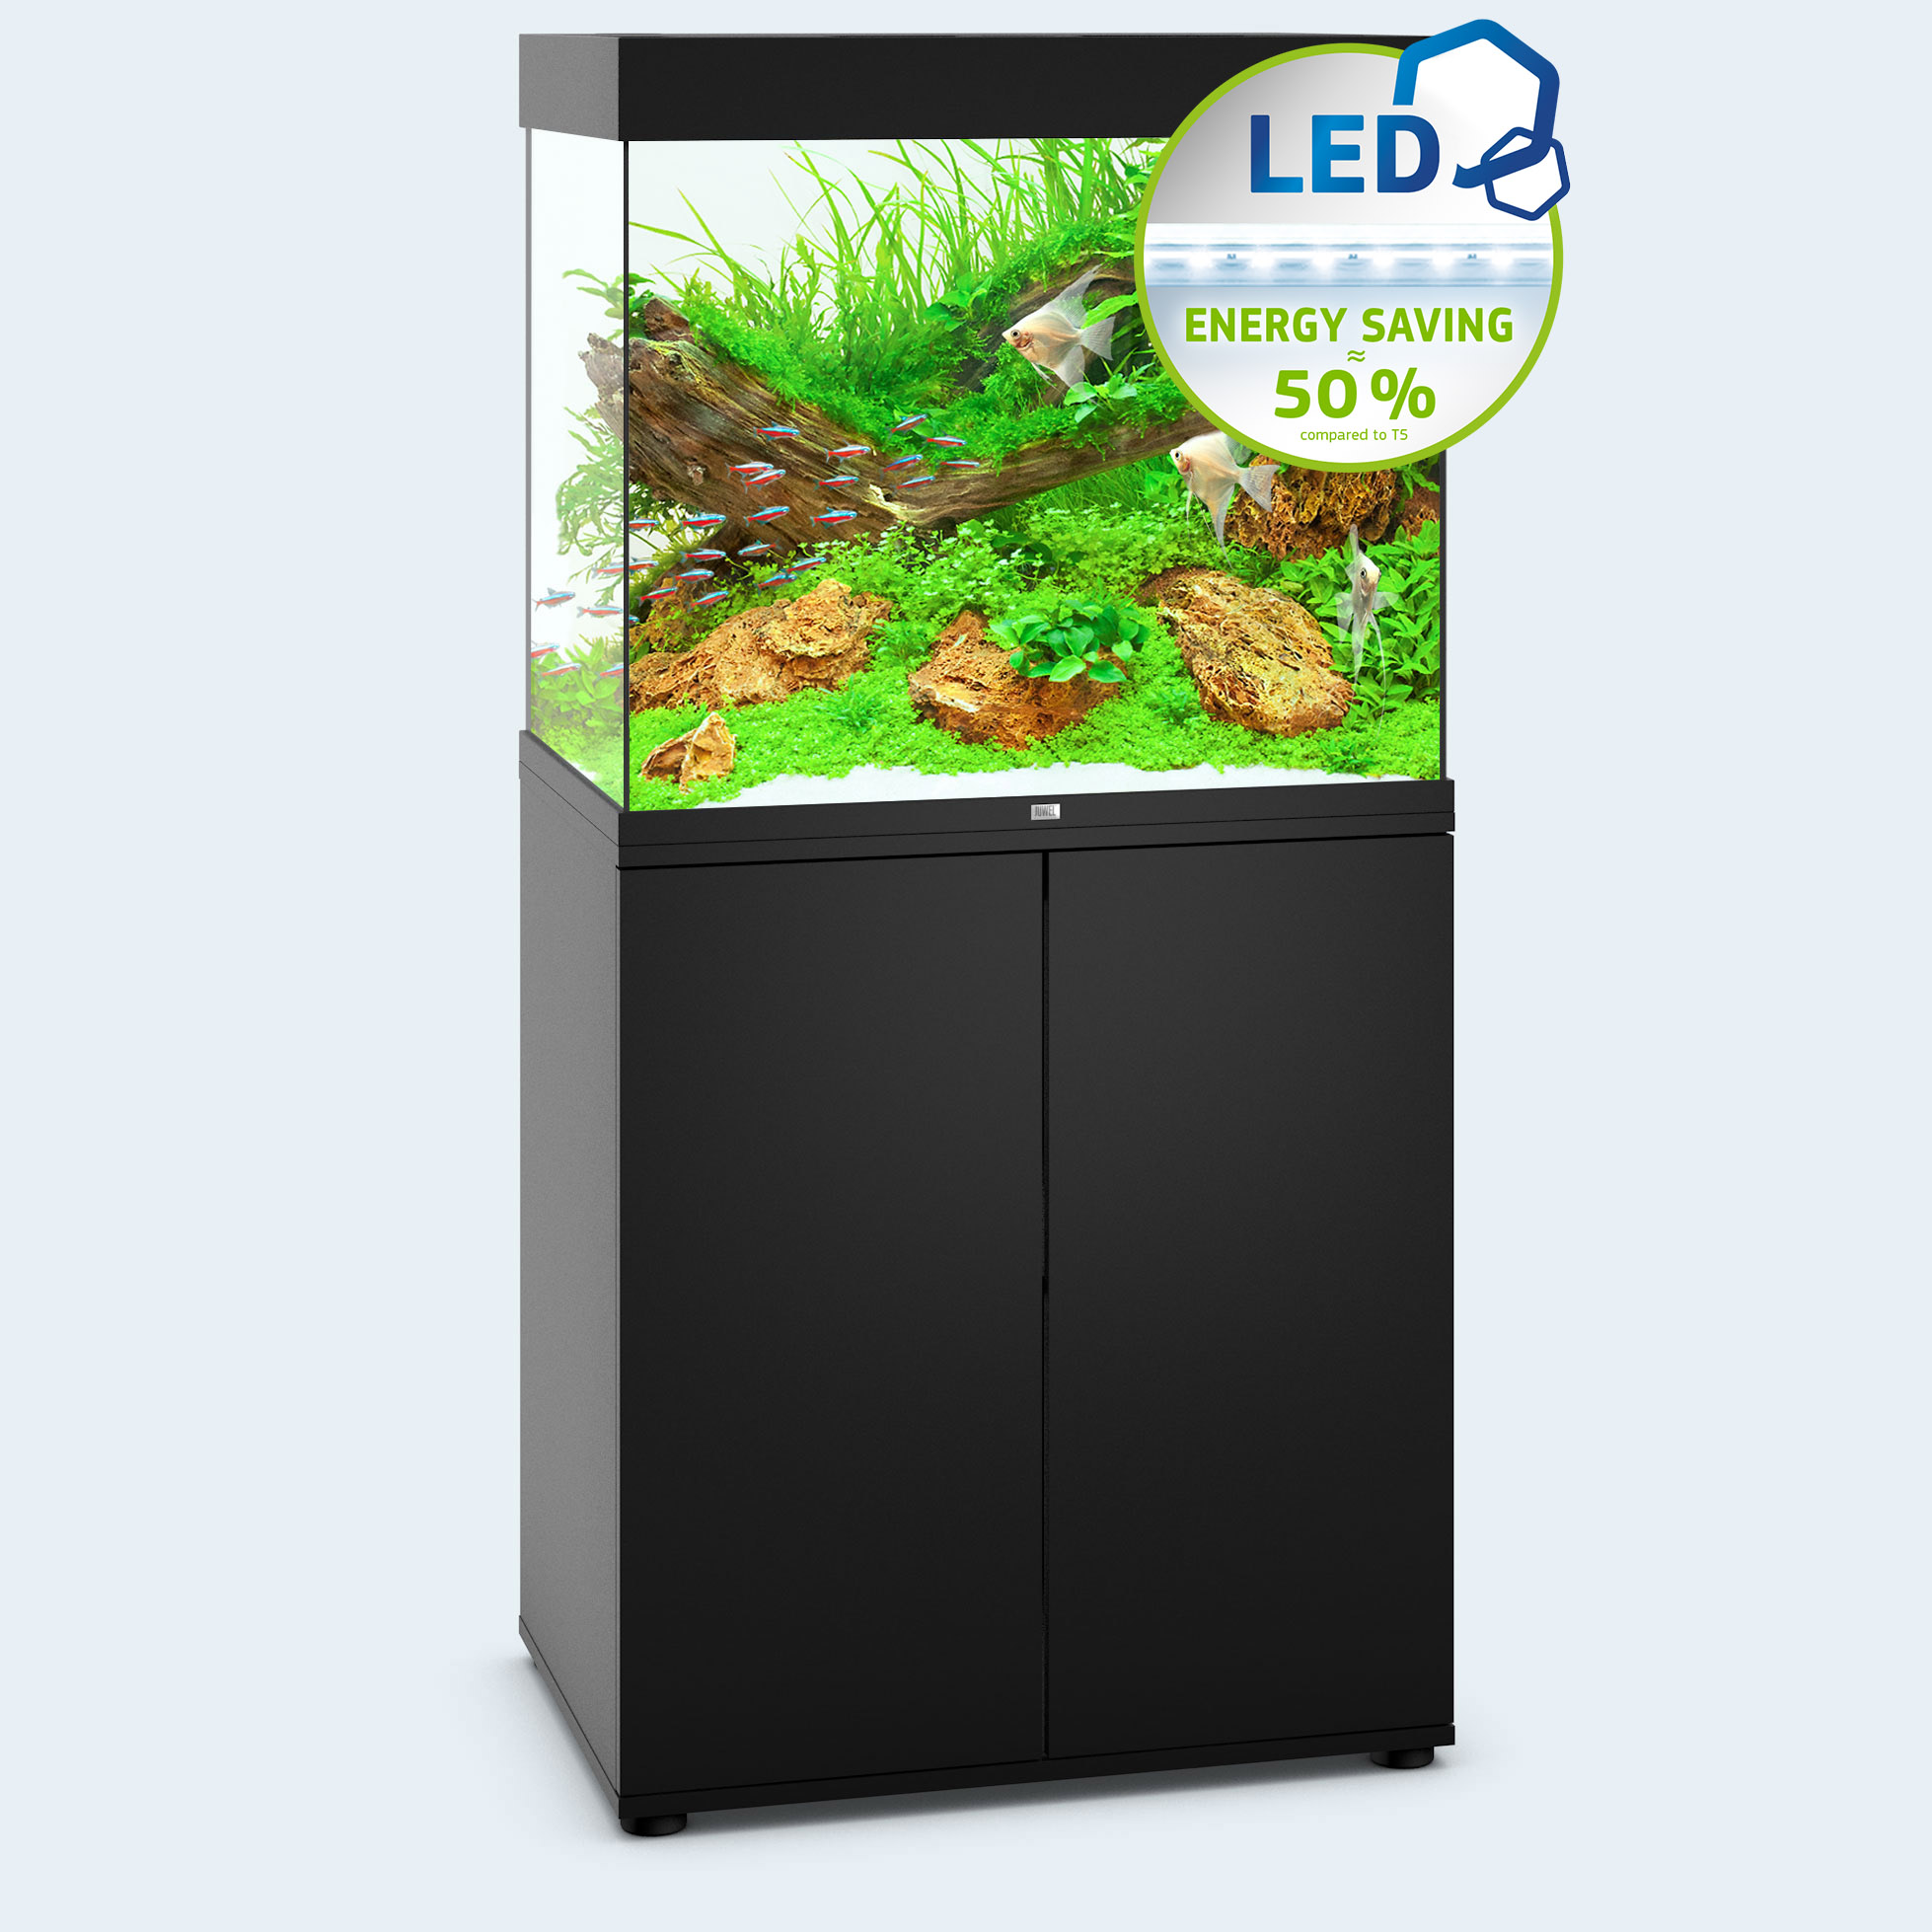 Juwel aquarium lido 200 led purchase online for Aquarium juwel